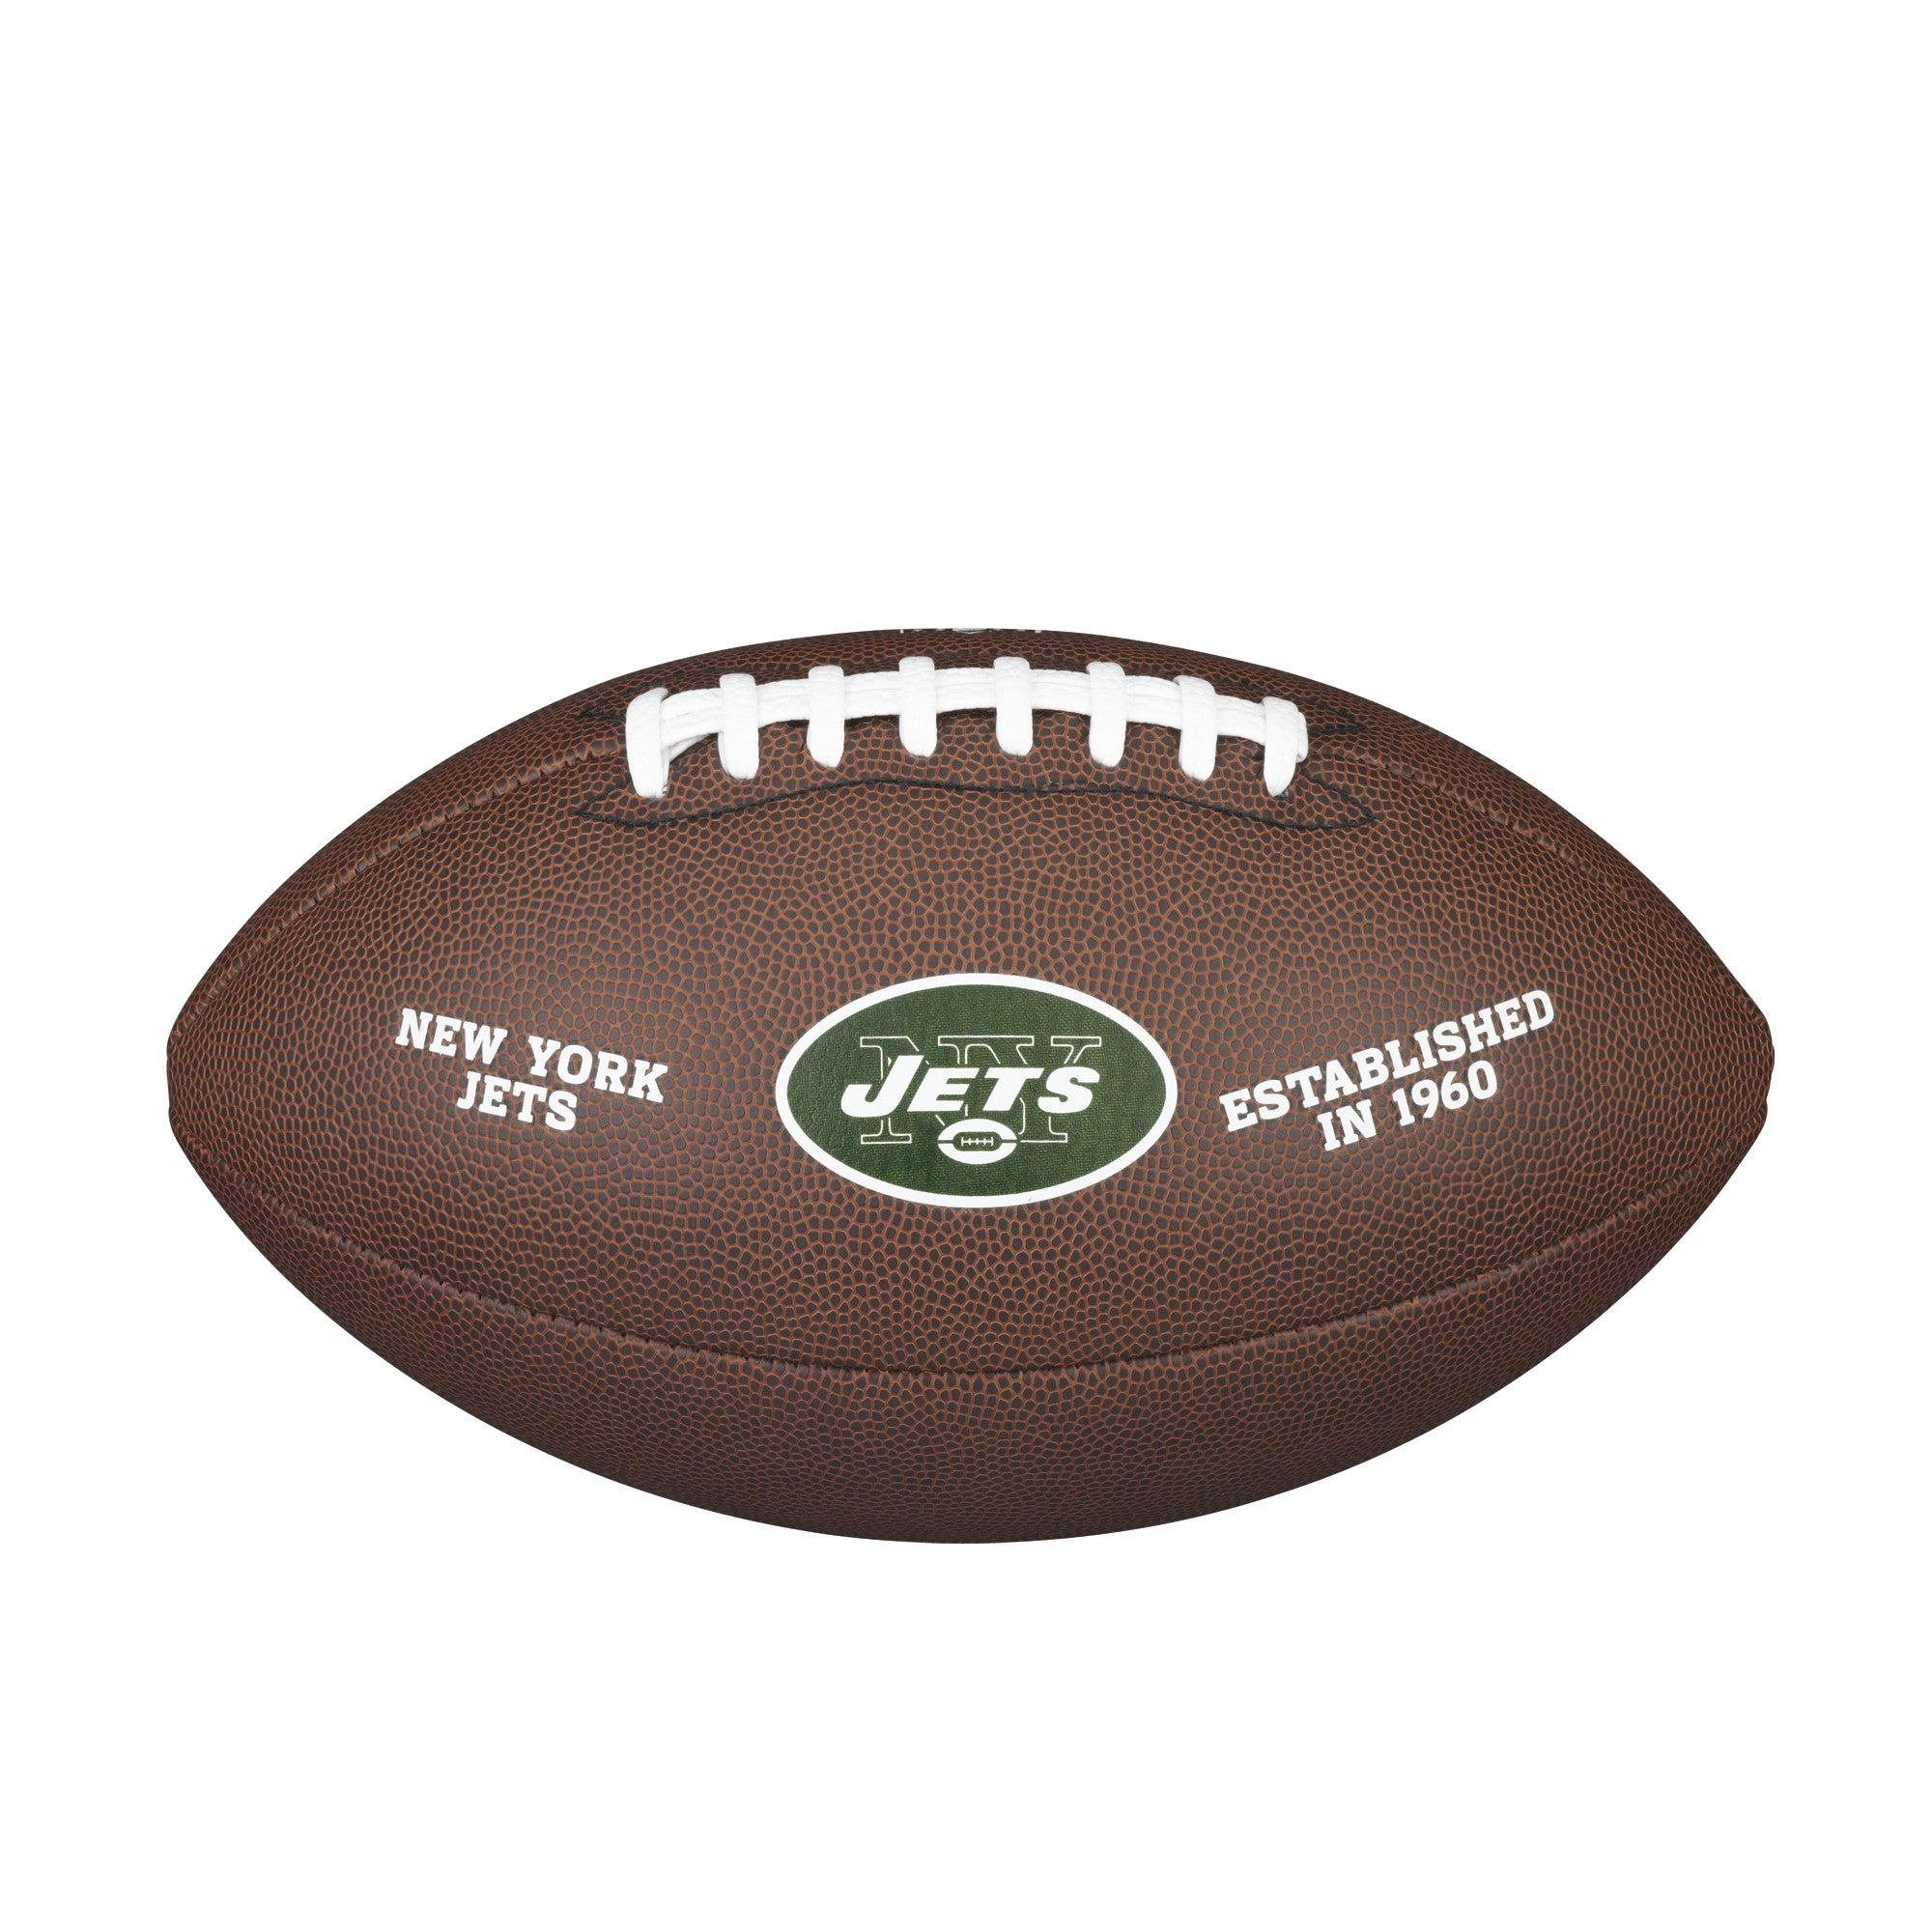 NFL TEAM LOGO COMPOSITE FOOTBALL - OFFICIAL, NEW YORK JETS